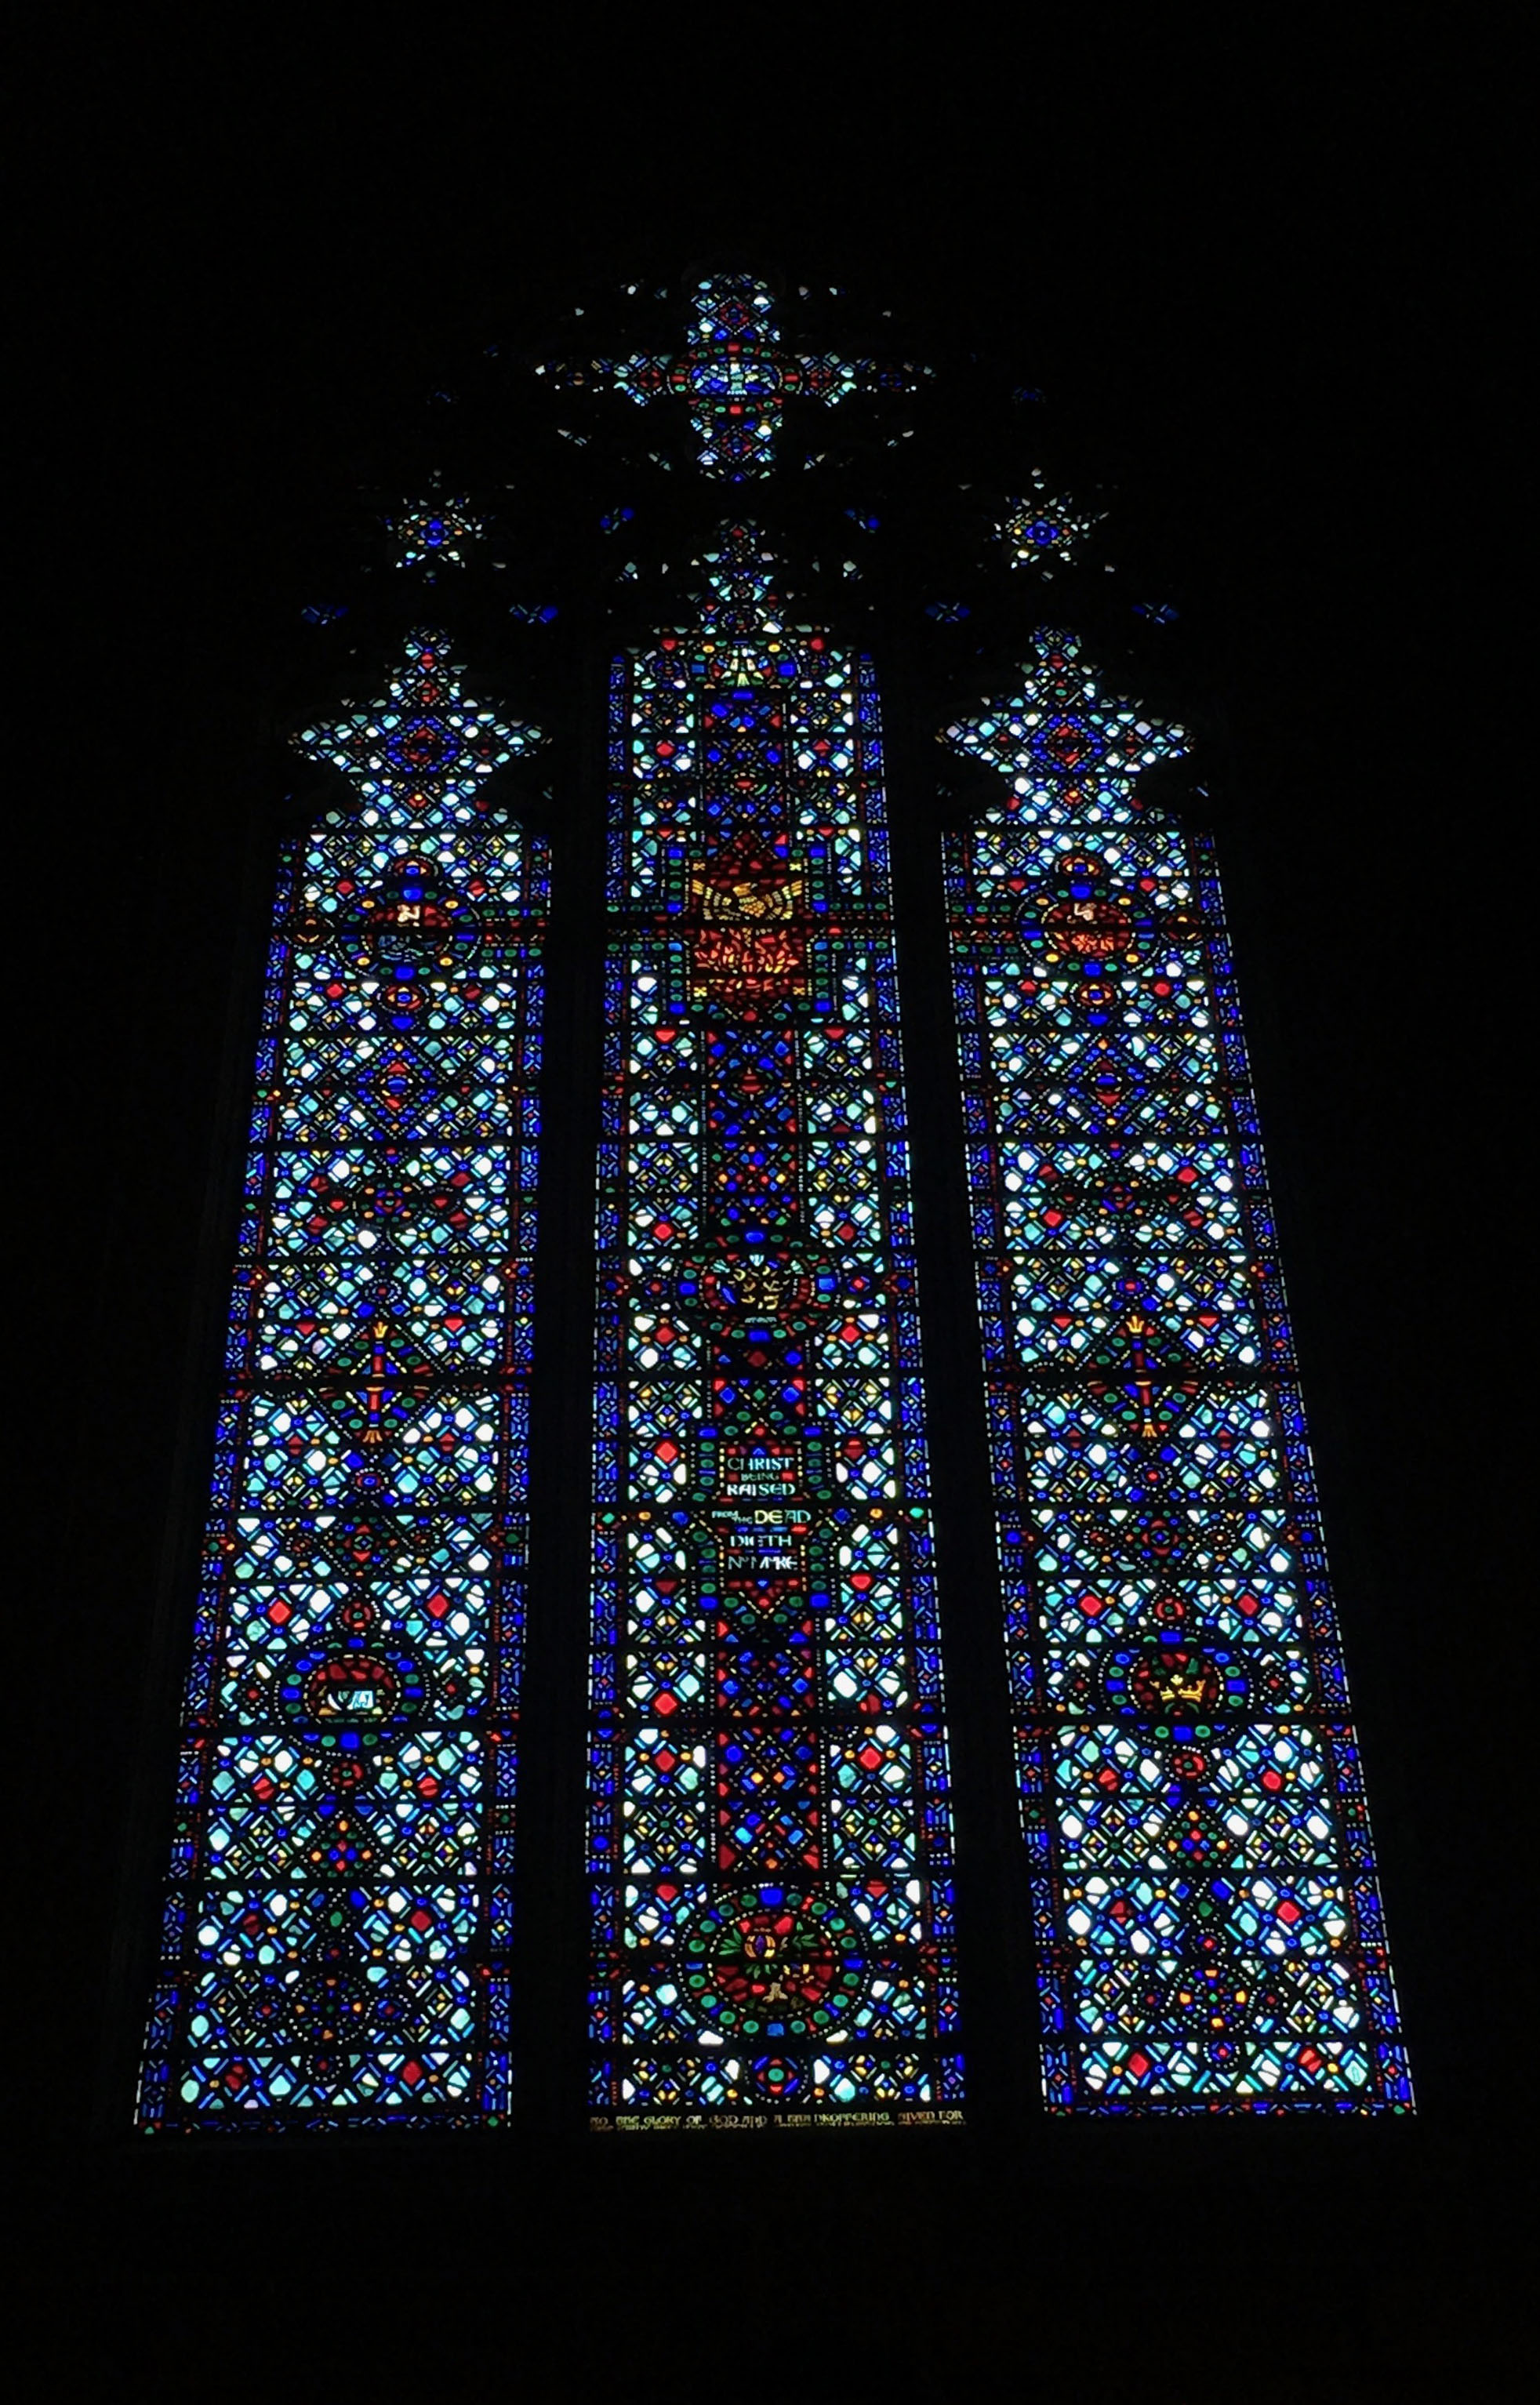 A few of the windows from the Church of the Heavenly Rest. Here you can see that the windows become lighter as they progress around the nave.